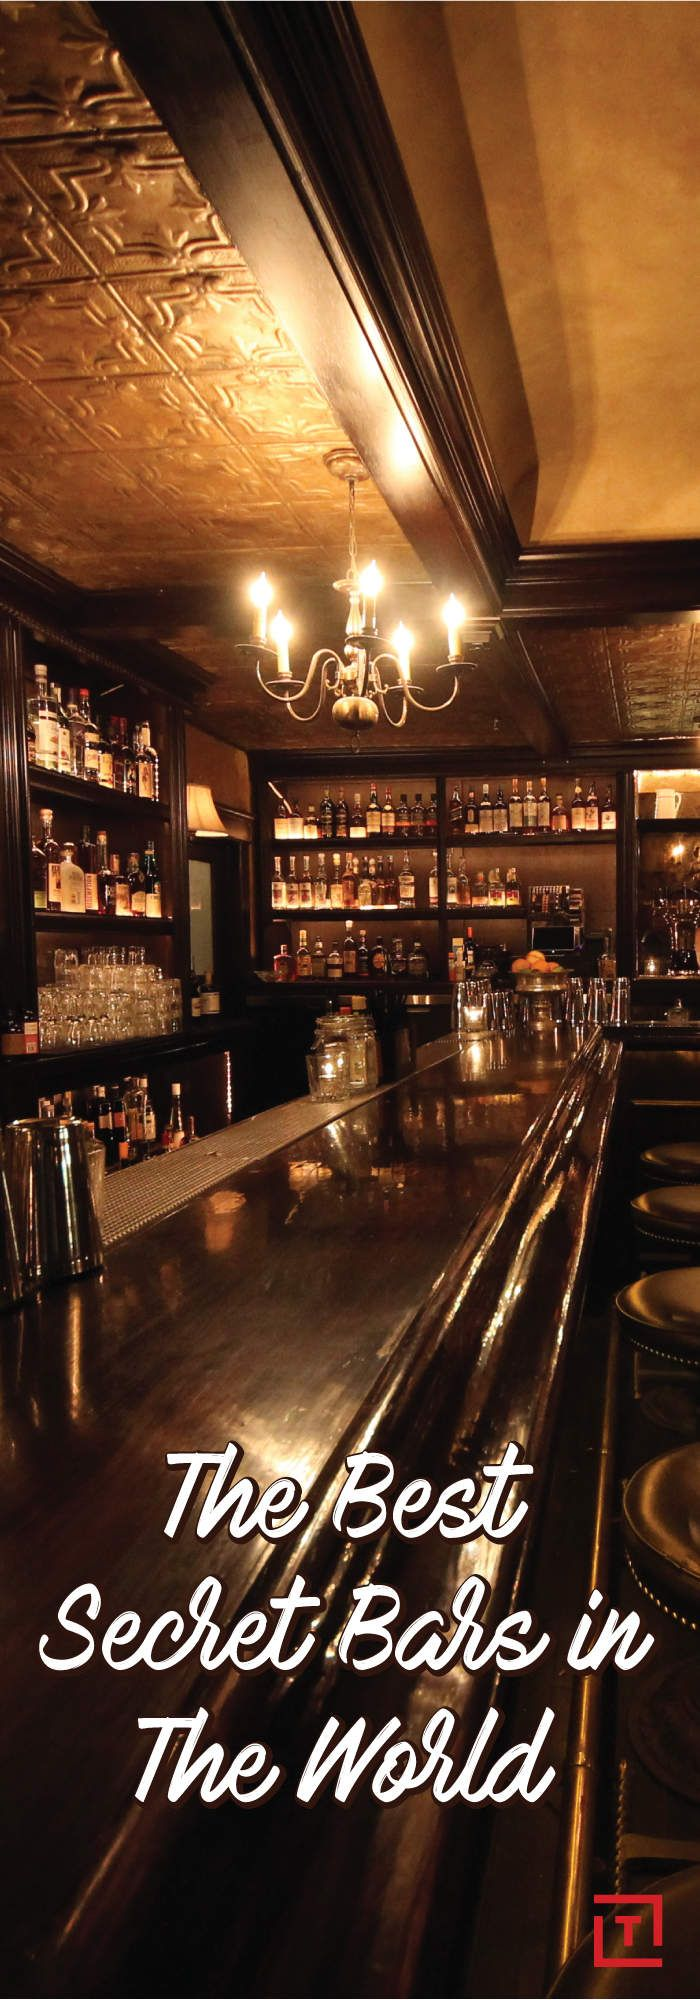 The 21 Best Secret Bars in the World | NYC, London, San Francisco, Singapore, Denver, Gruyeres, Switzerland, Philadelphia, Mexico City, Paris, L.A., Berlin, San Diego, Chicago, Amsterdam, Raleigh,